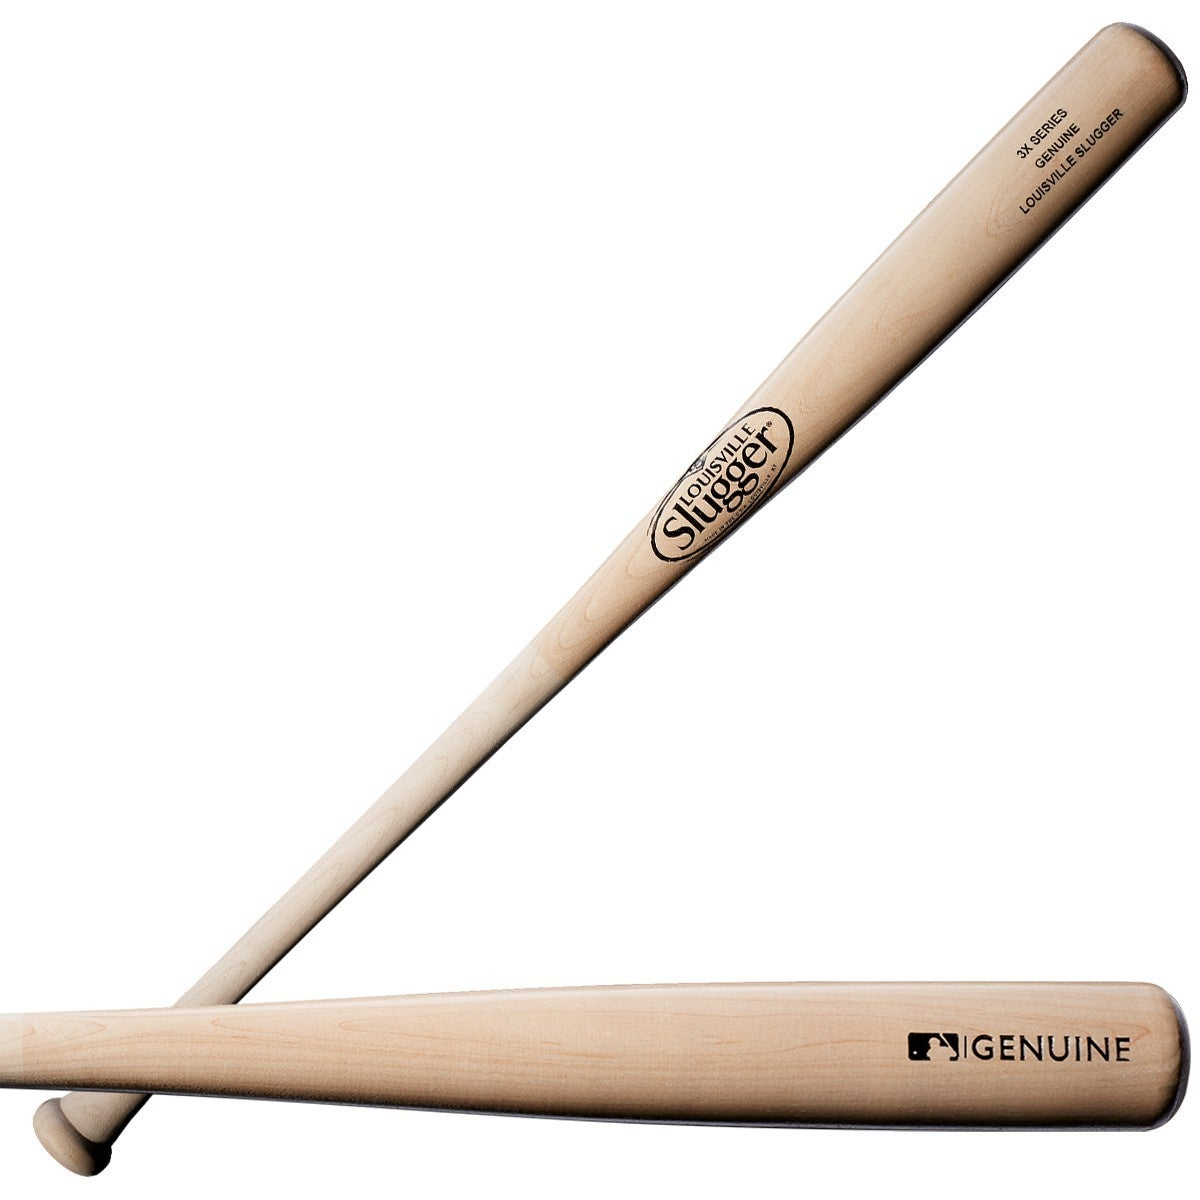 Series 3 Genuine Natural Baseball Bat | Louisville Slugger